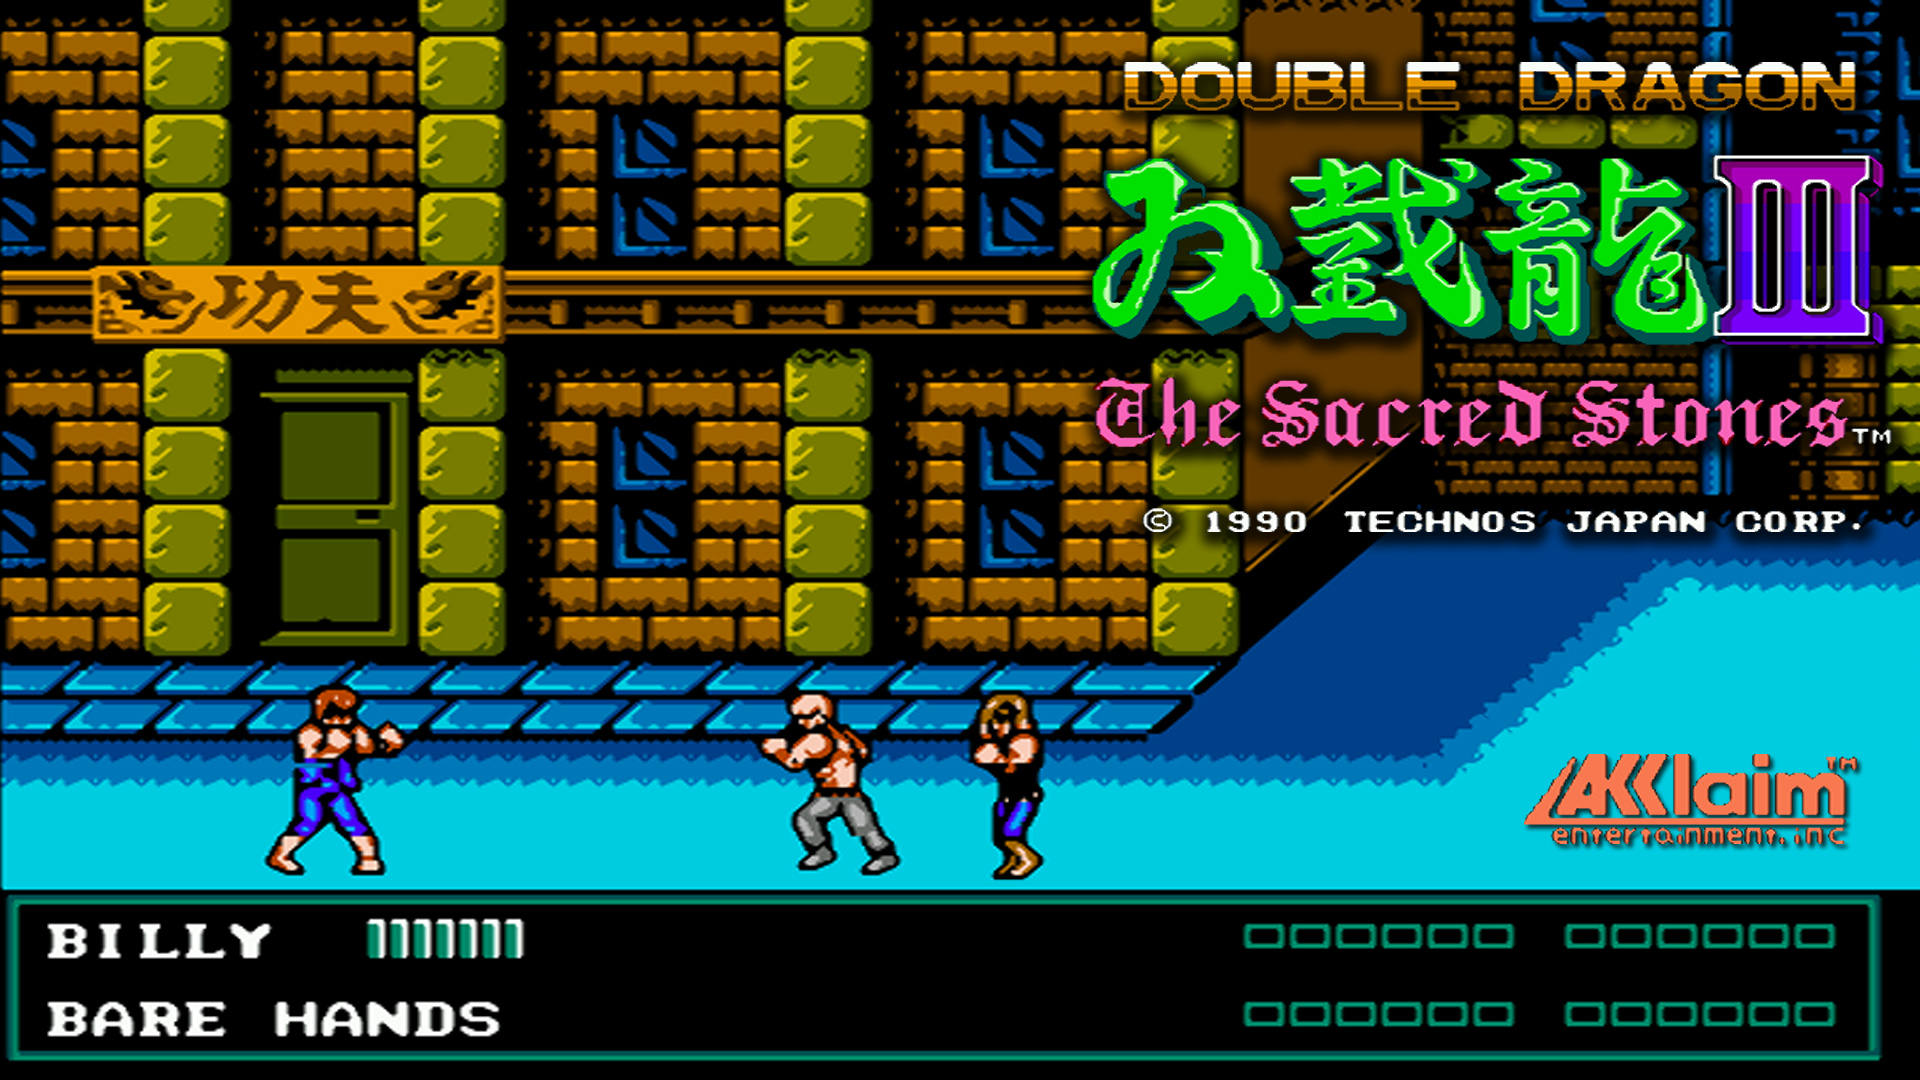 Double Dragon Iii The Sacred Stones Fondo De Pantalla Hd